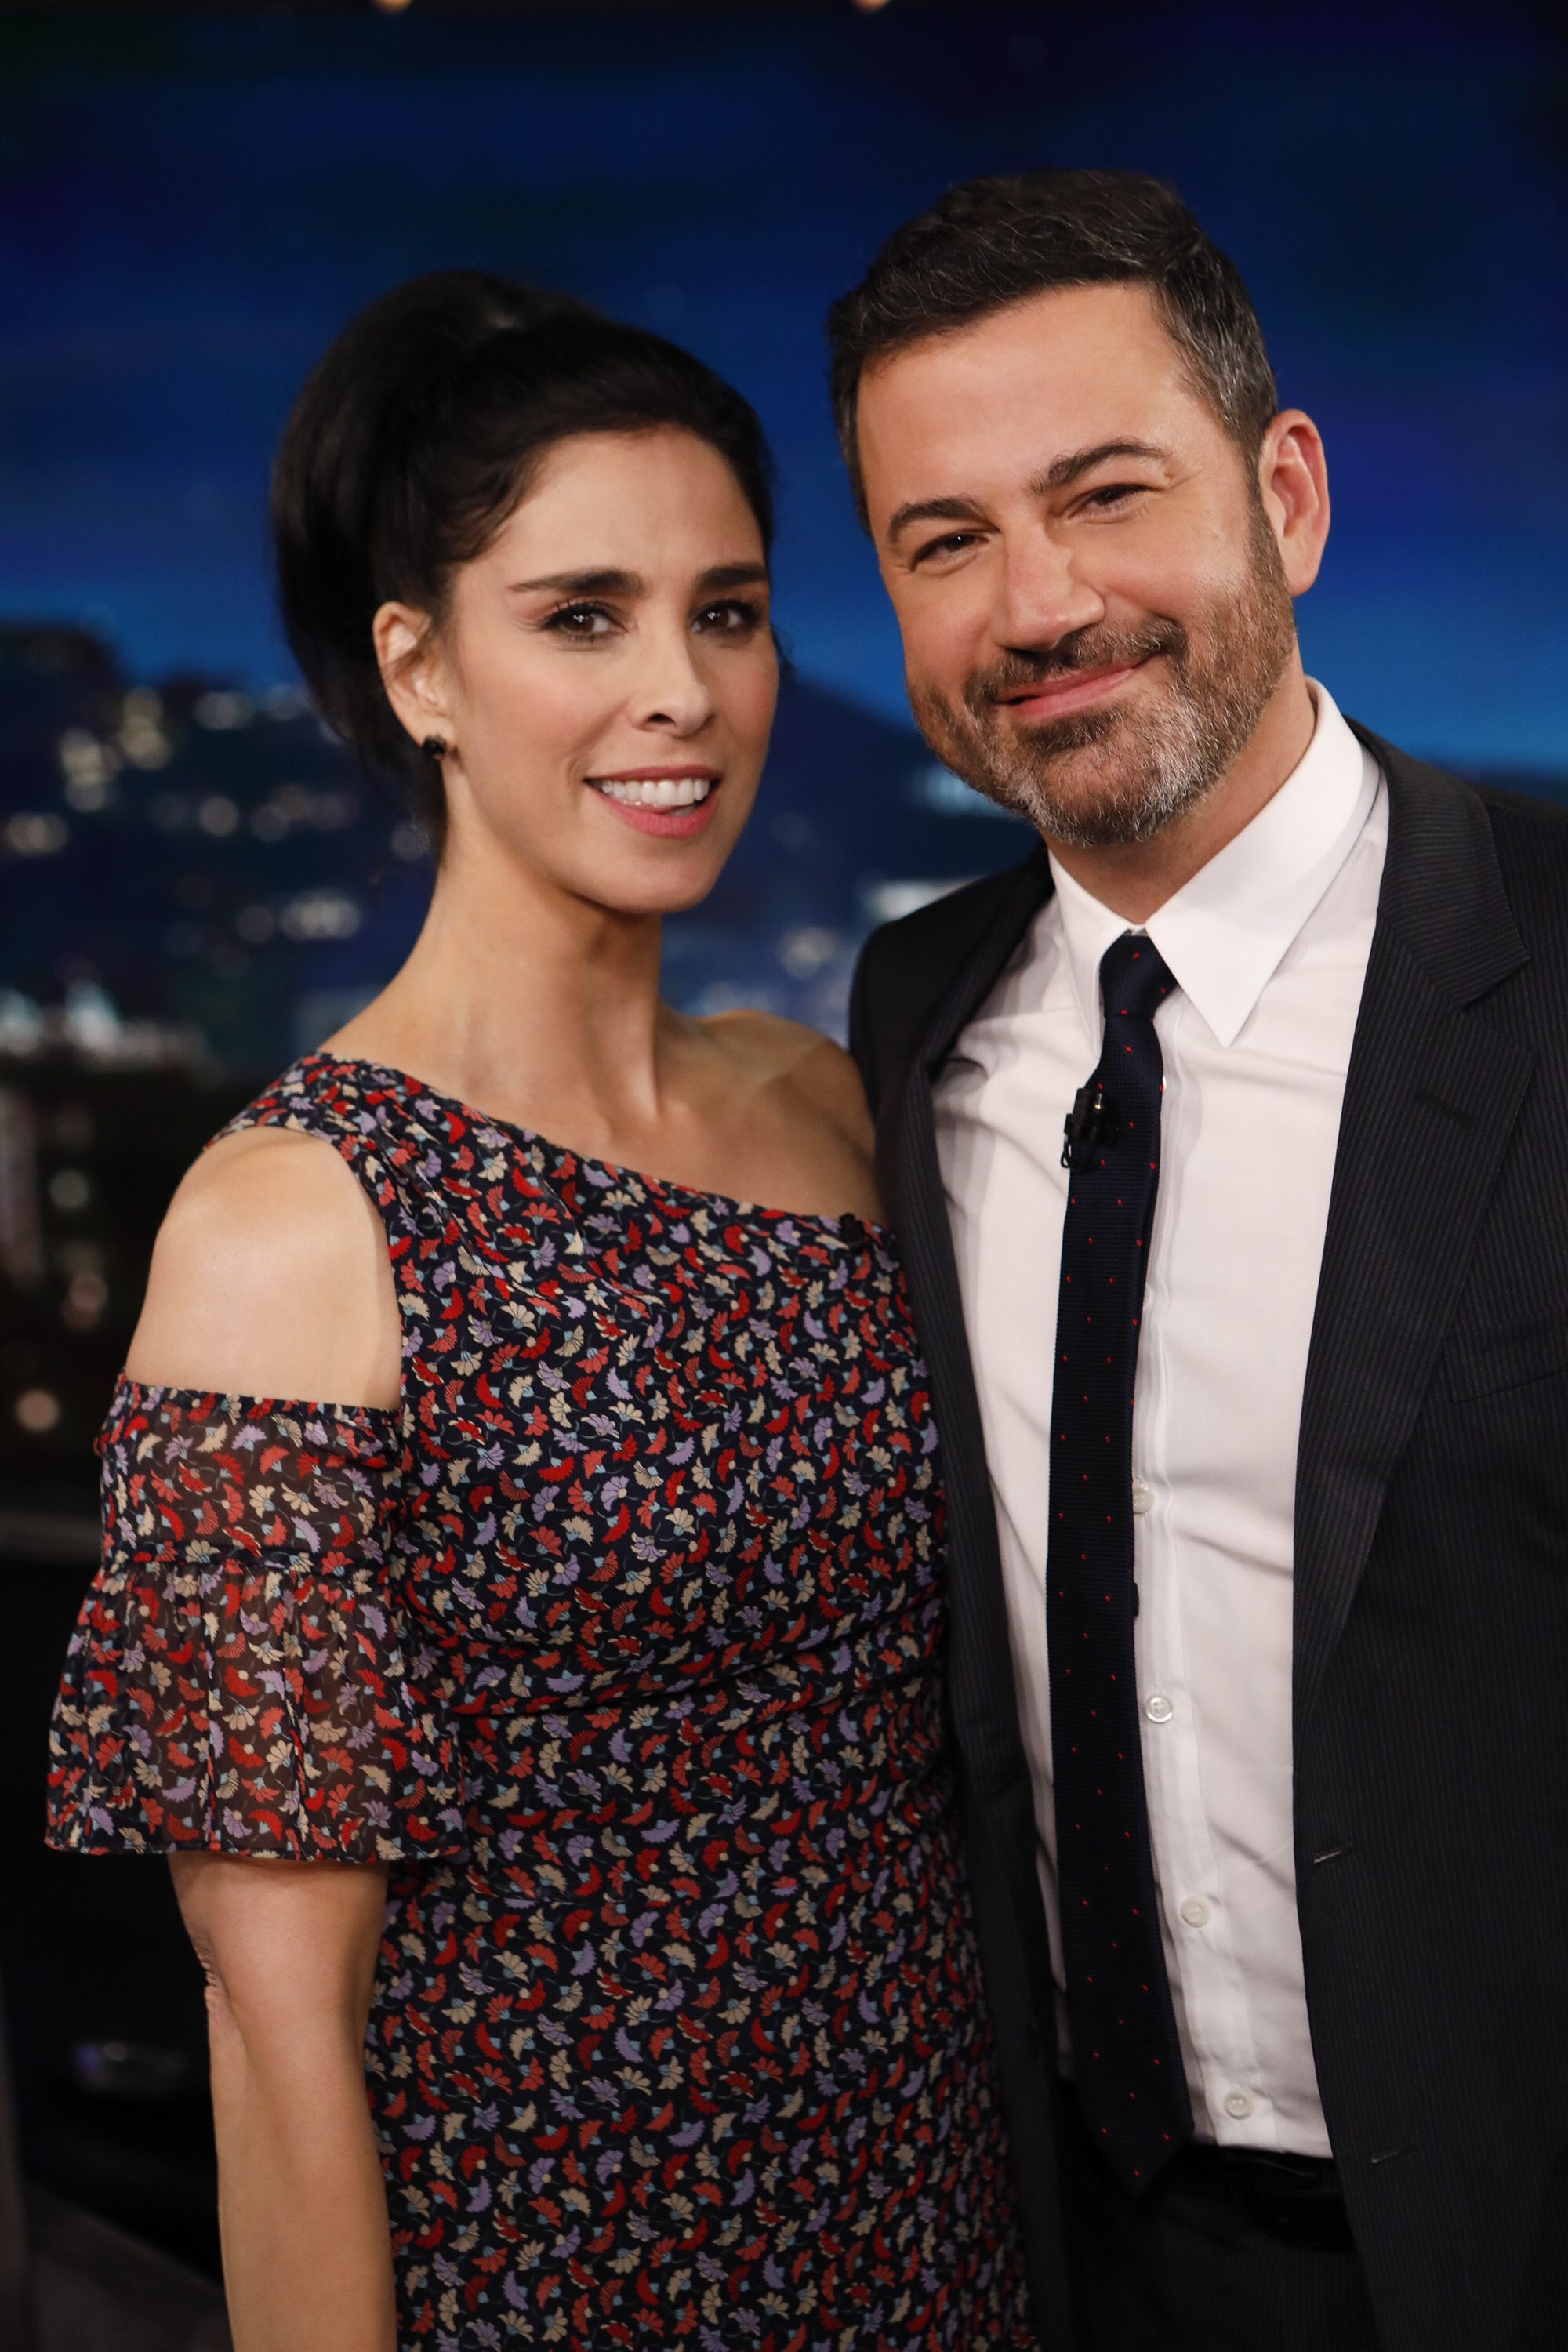 Sarah Silverman visits Jimmy Kimmel